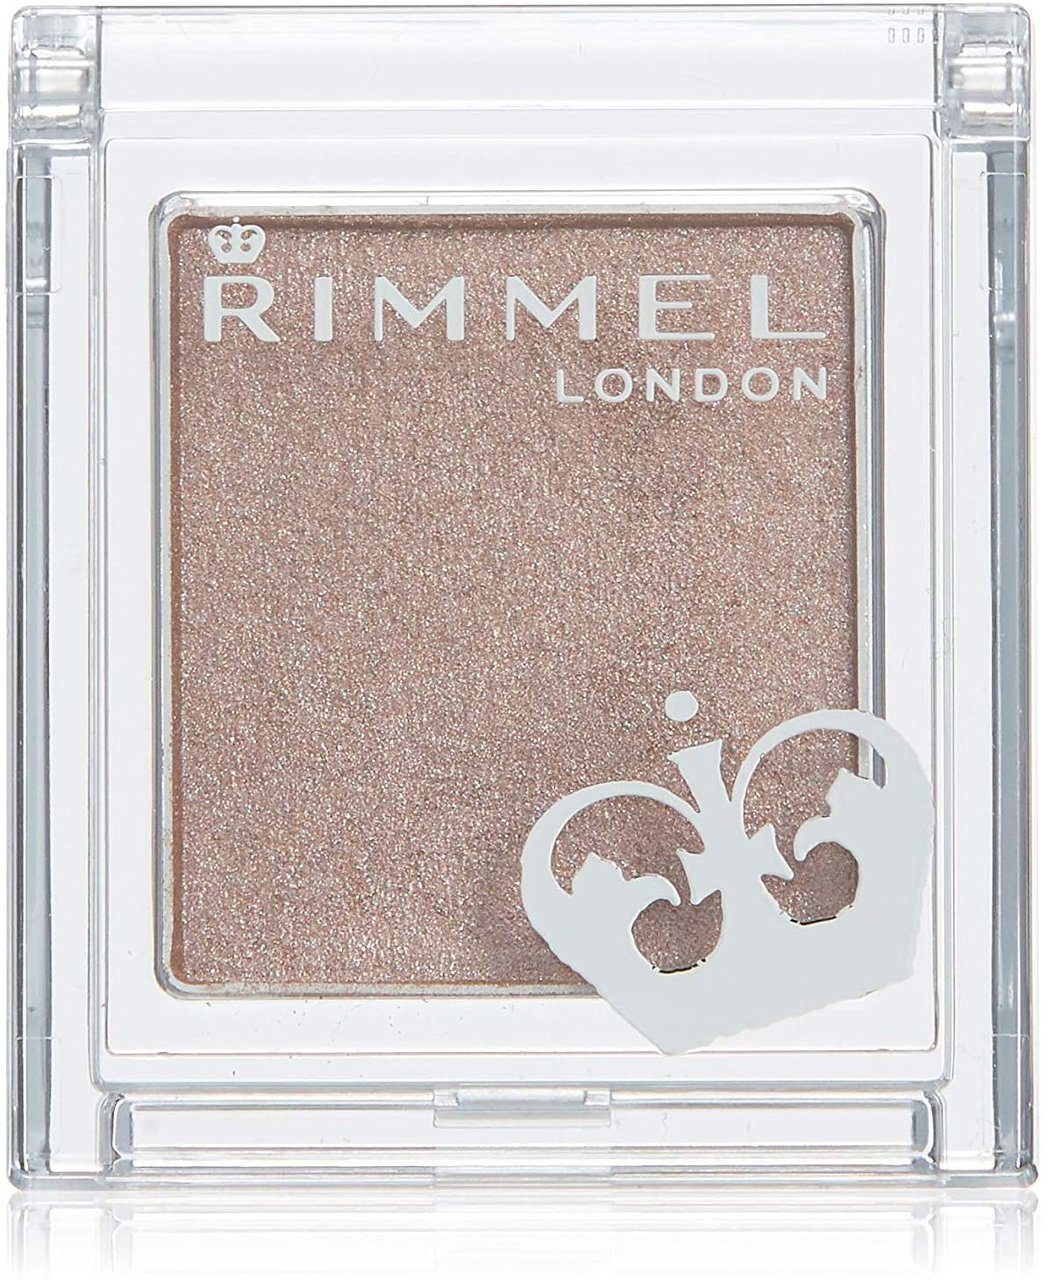 RIMMEL(倫敦芮魅)『Prism Powder Eye Color(009)』